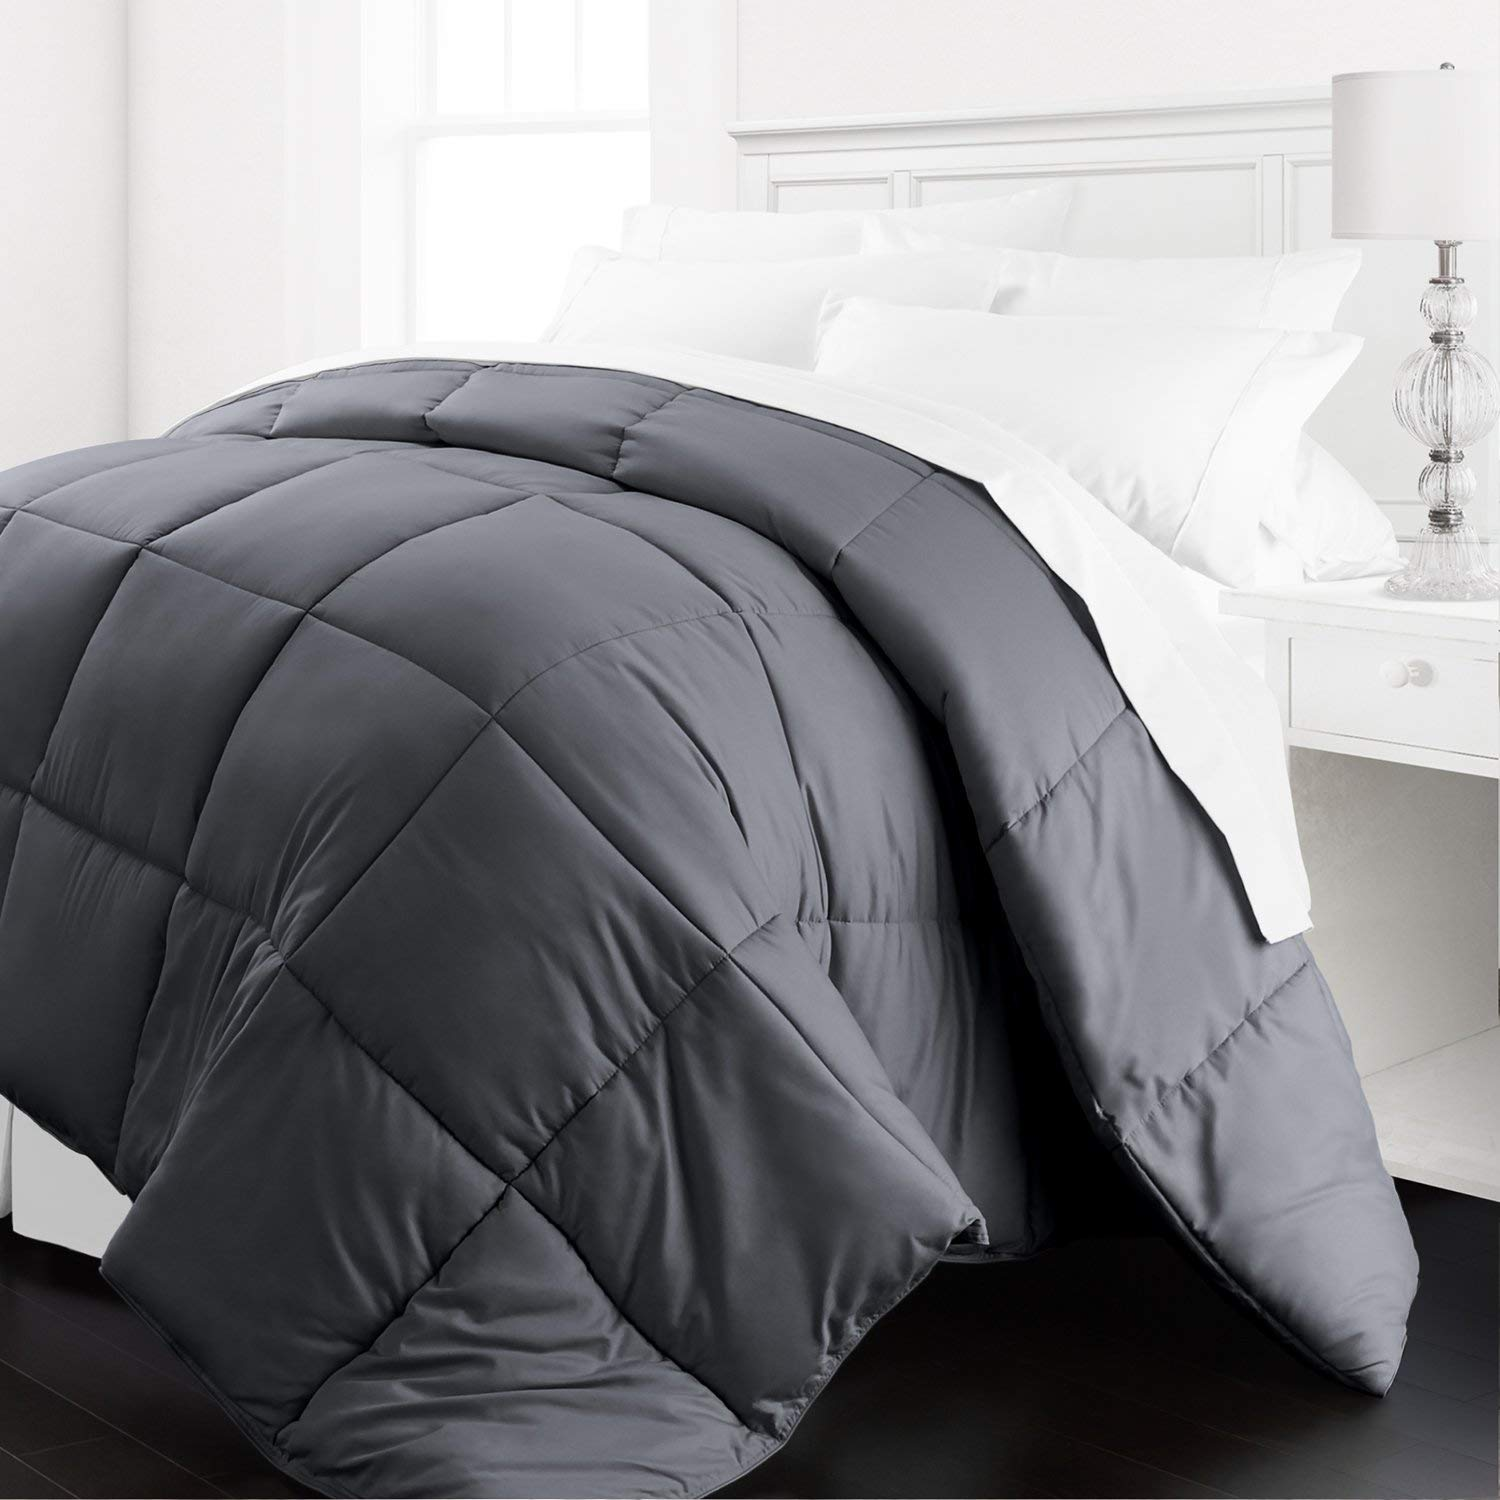 Beckham Hotel Collection - Lightweight All Season - Luxury Goose Down Alternative Comforter - Hotel Quality Comforter and Hypoallergenic  -Full/Queen - Gray